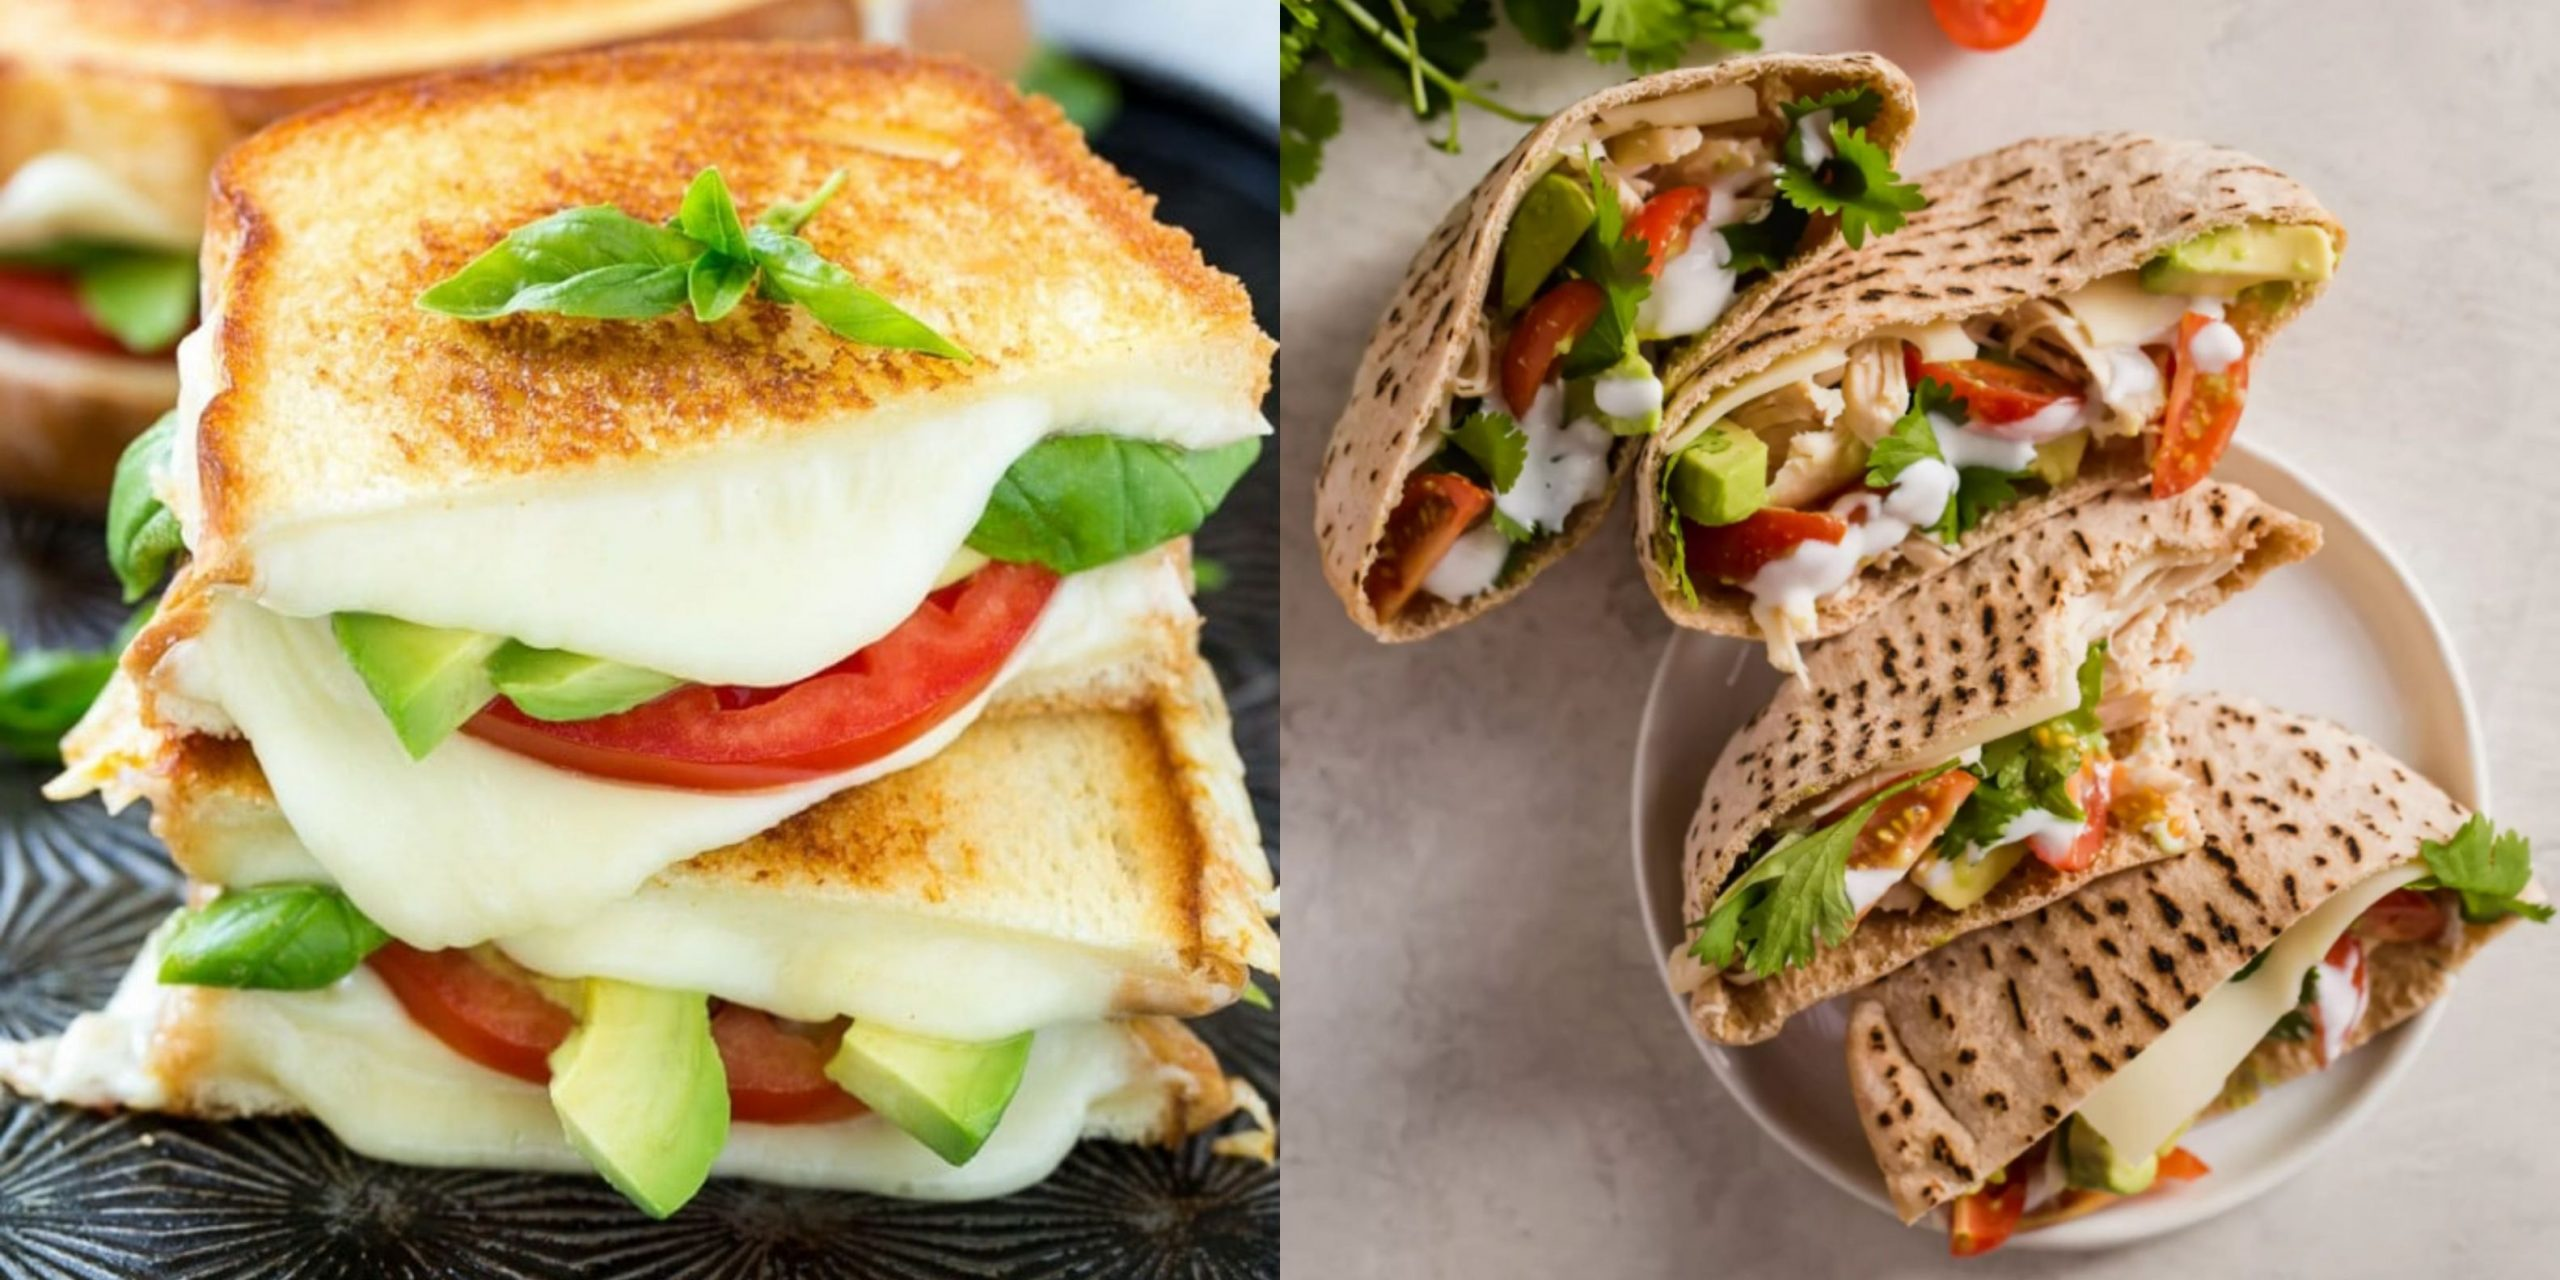 8 Best Sandwich Recipes for Summer - Lunch Sandwich Ideas - Sandwich Recipes Lunch